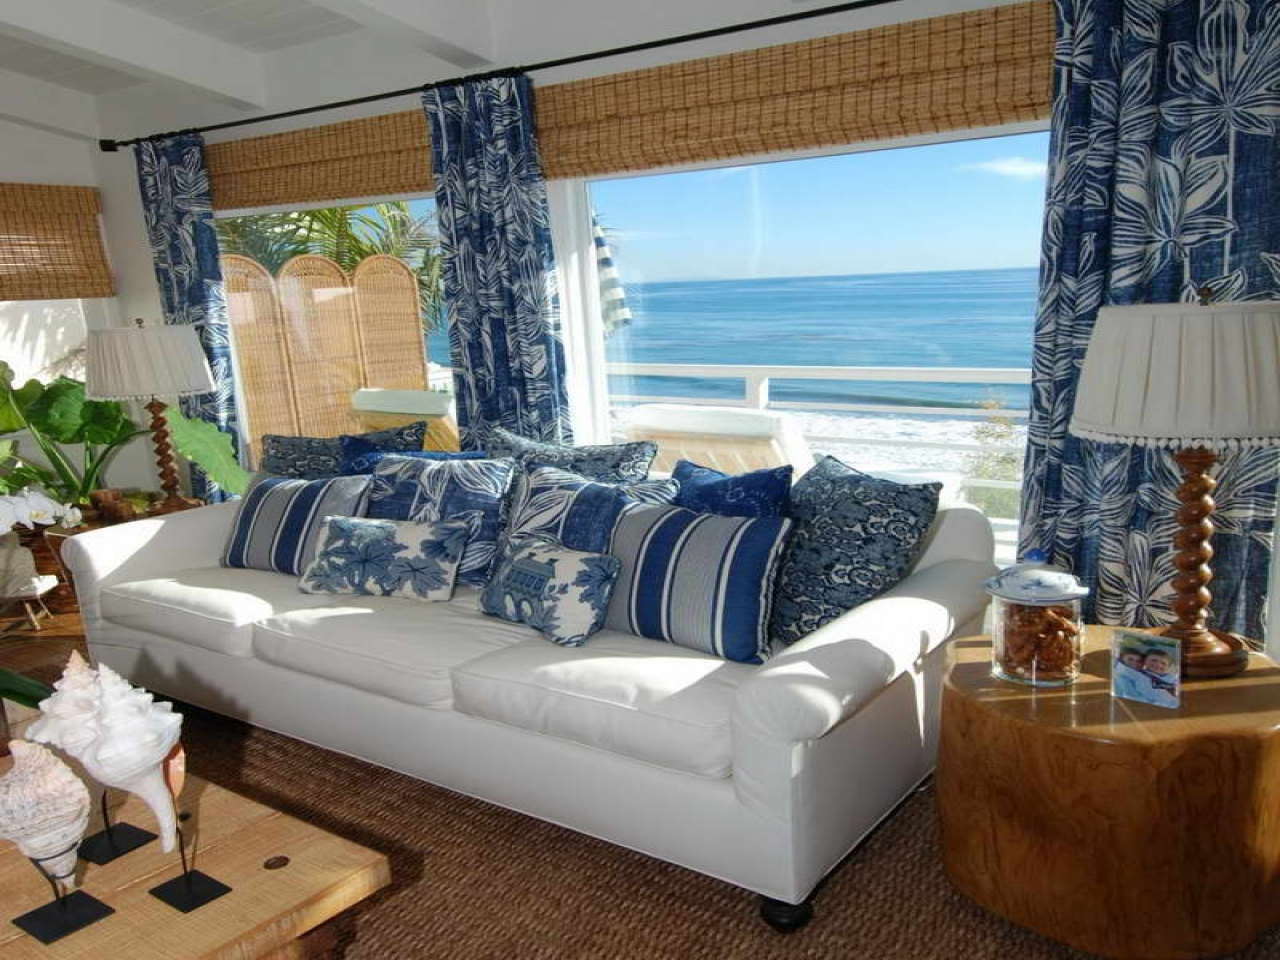 Small bedroom ideas beach cottage beach cottage design for Cottage beach house decor